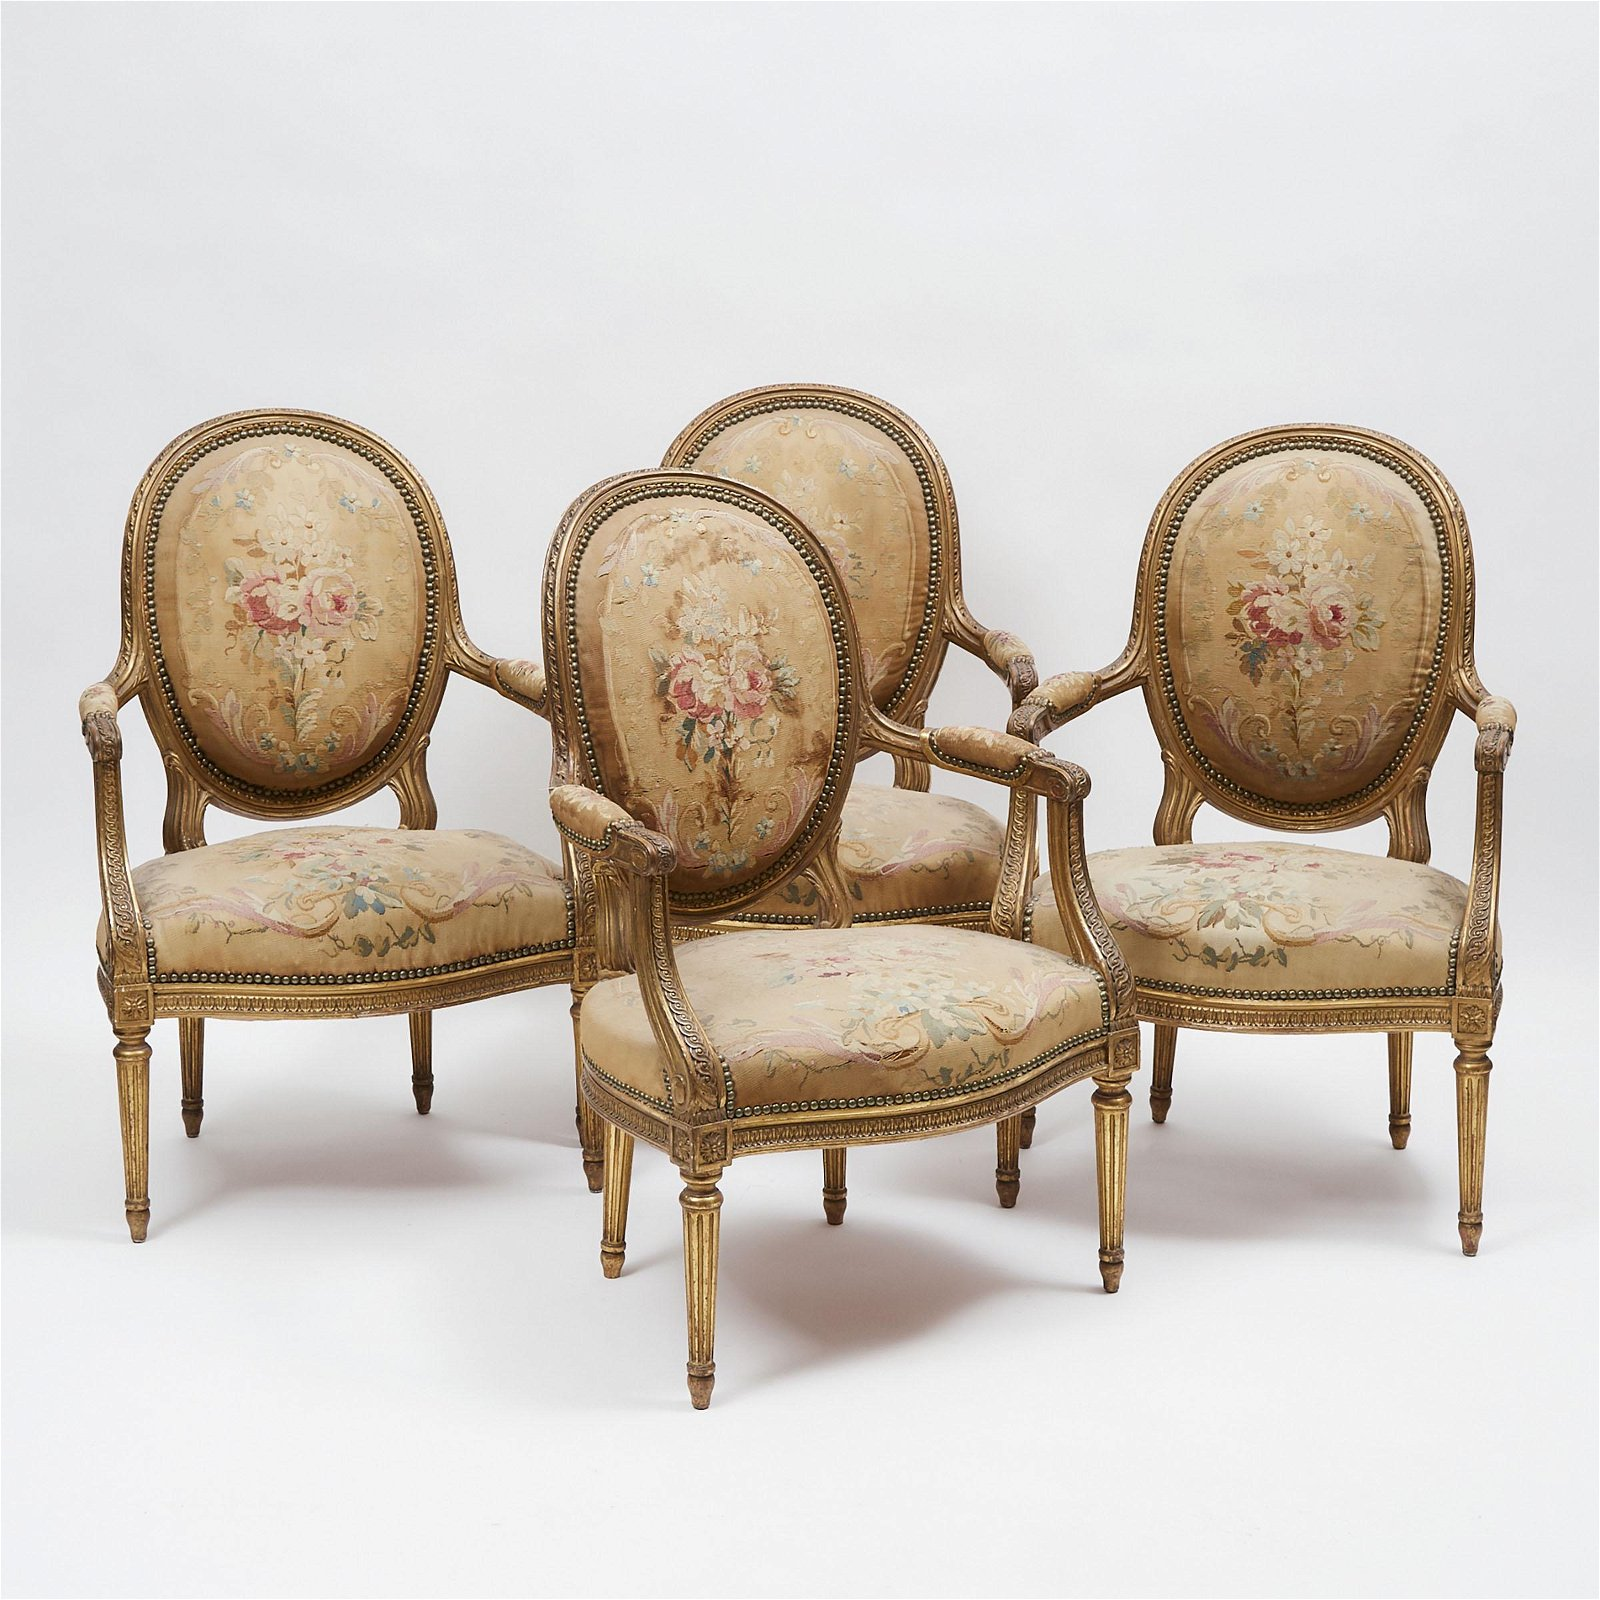 Set of Four Louis XVI Style Giltwood Fauteuils, 19th